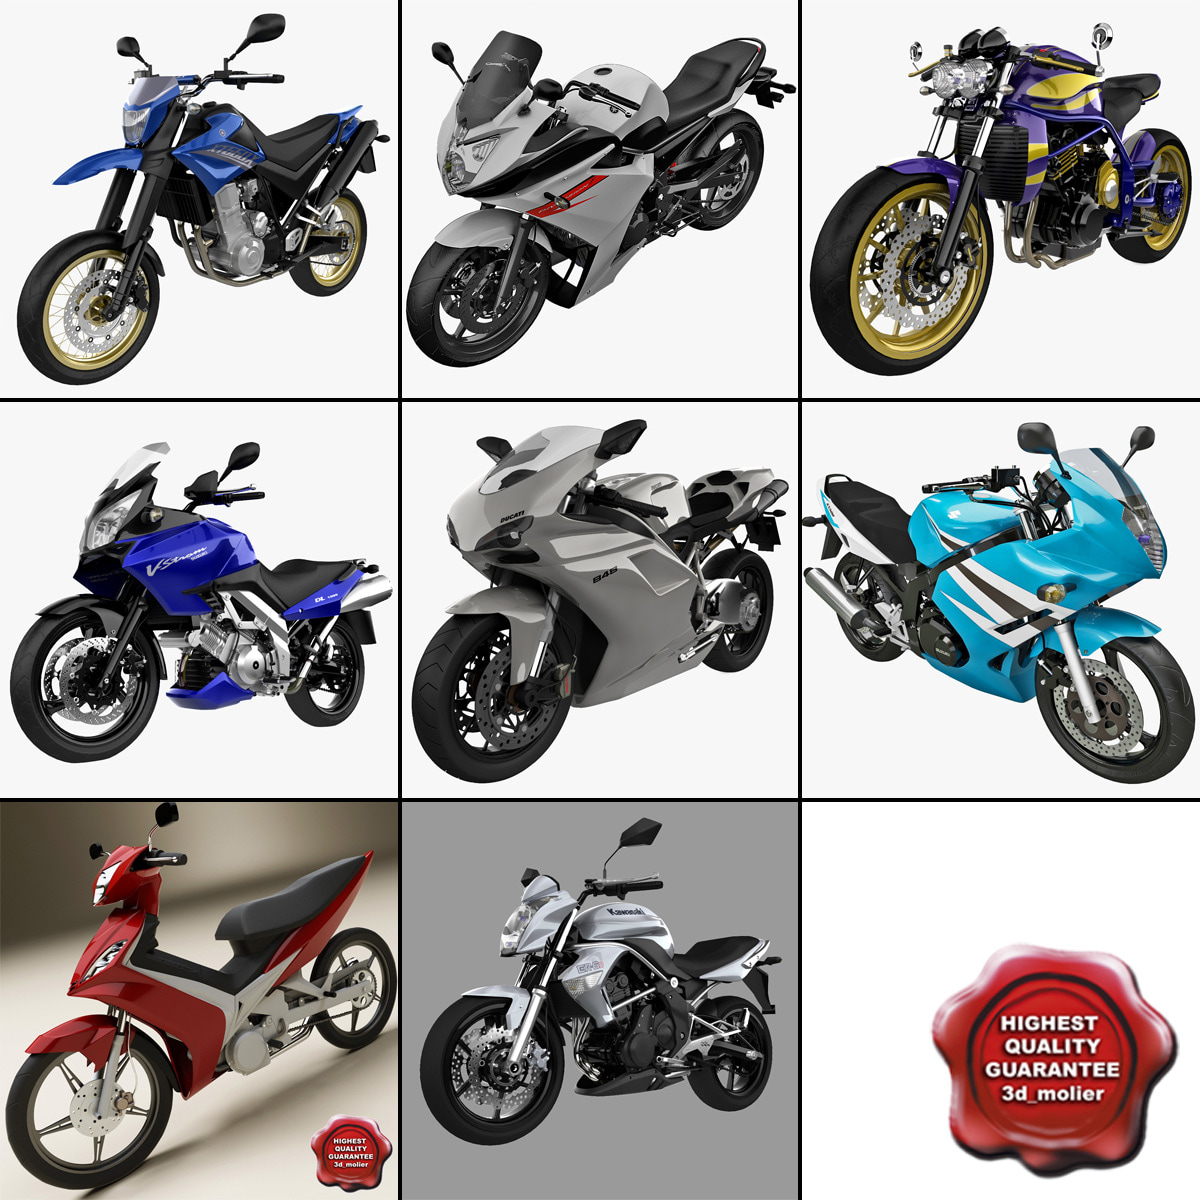 Motorcycles_Collection_V15_000.jpg